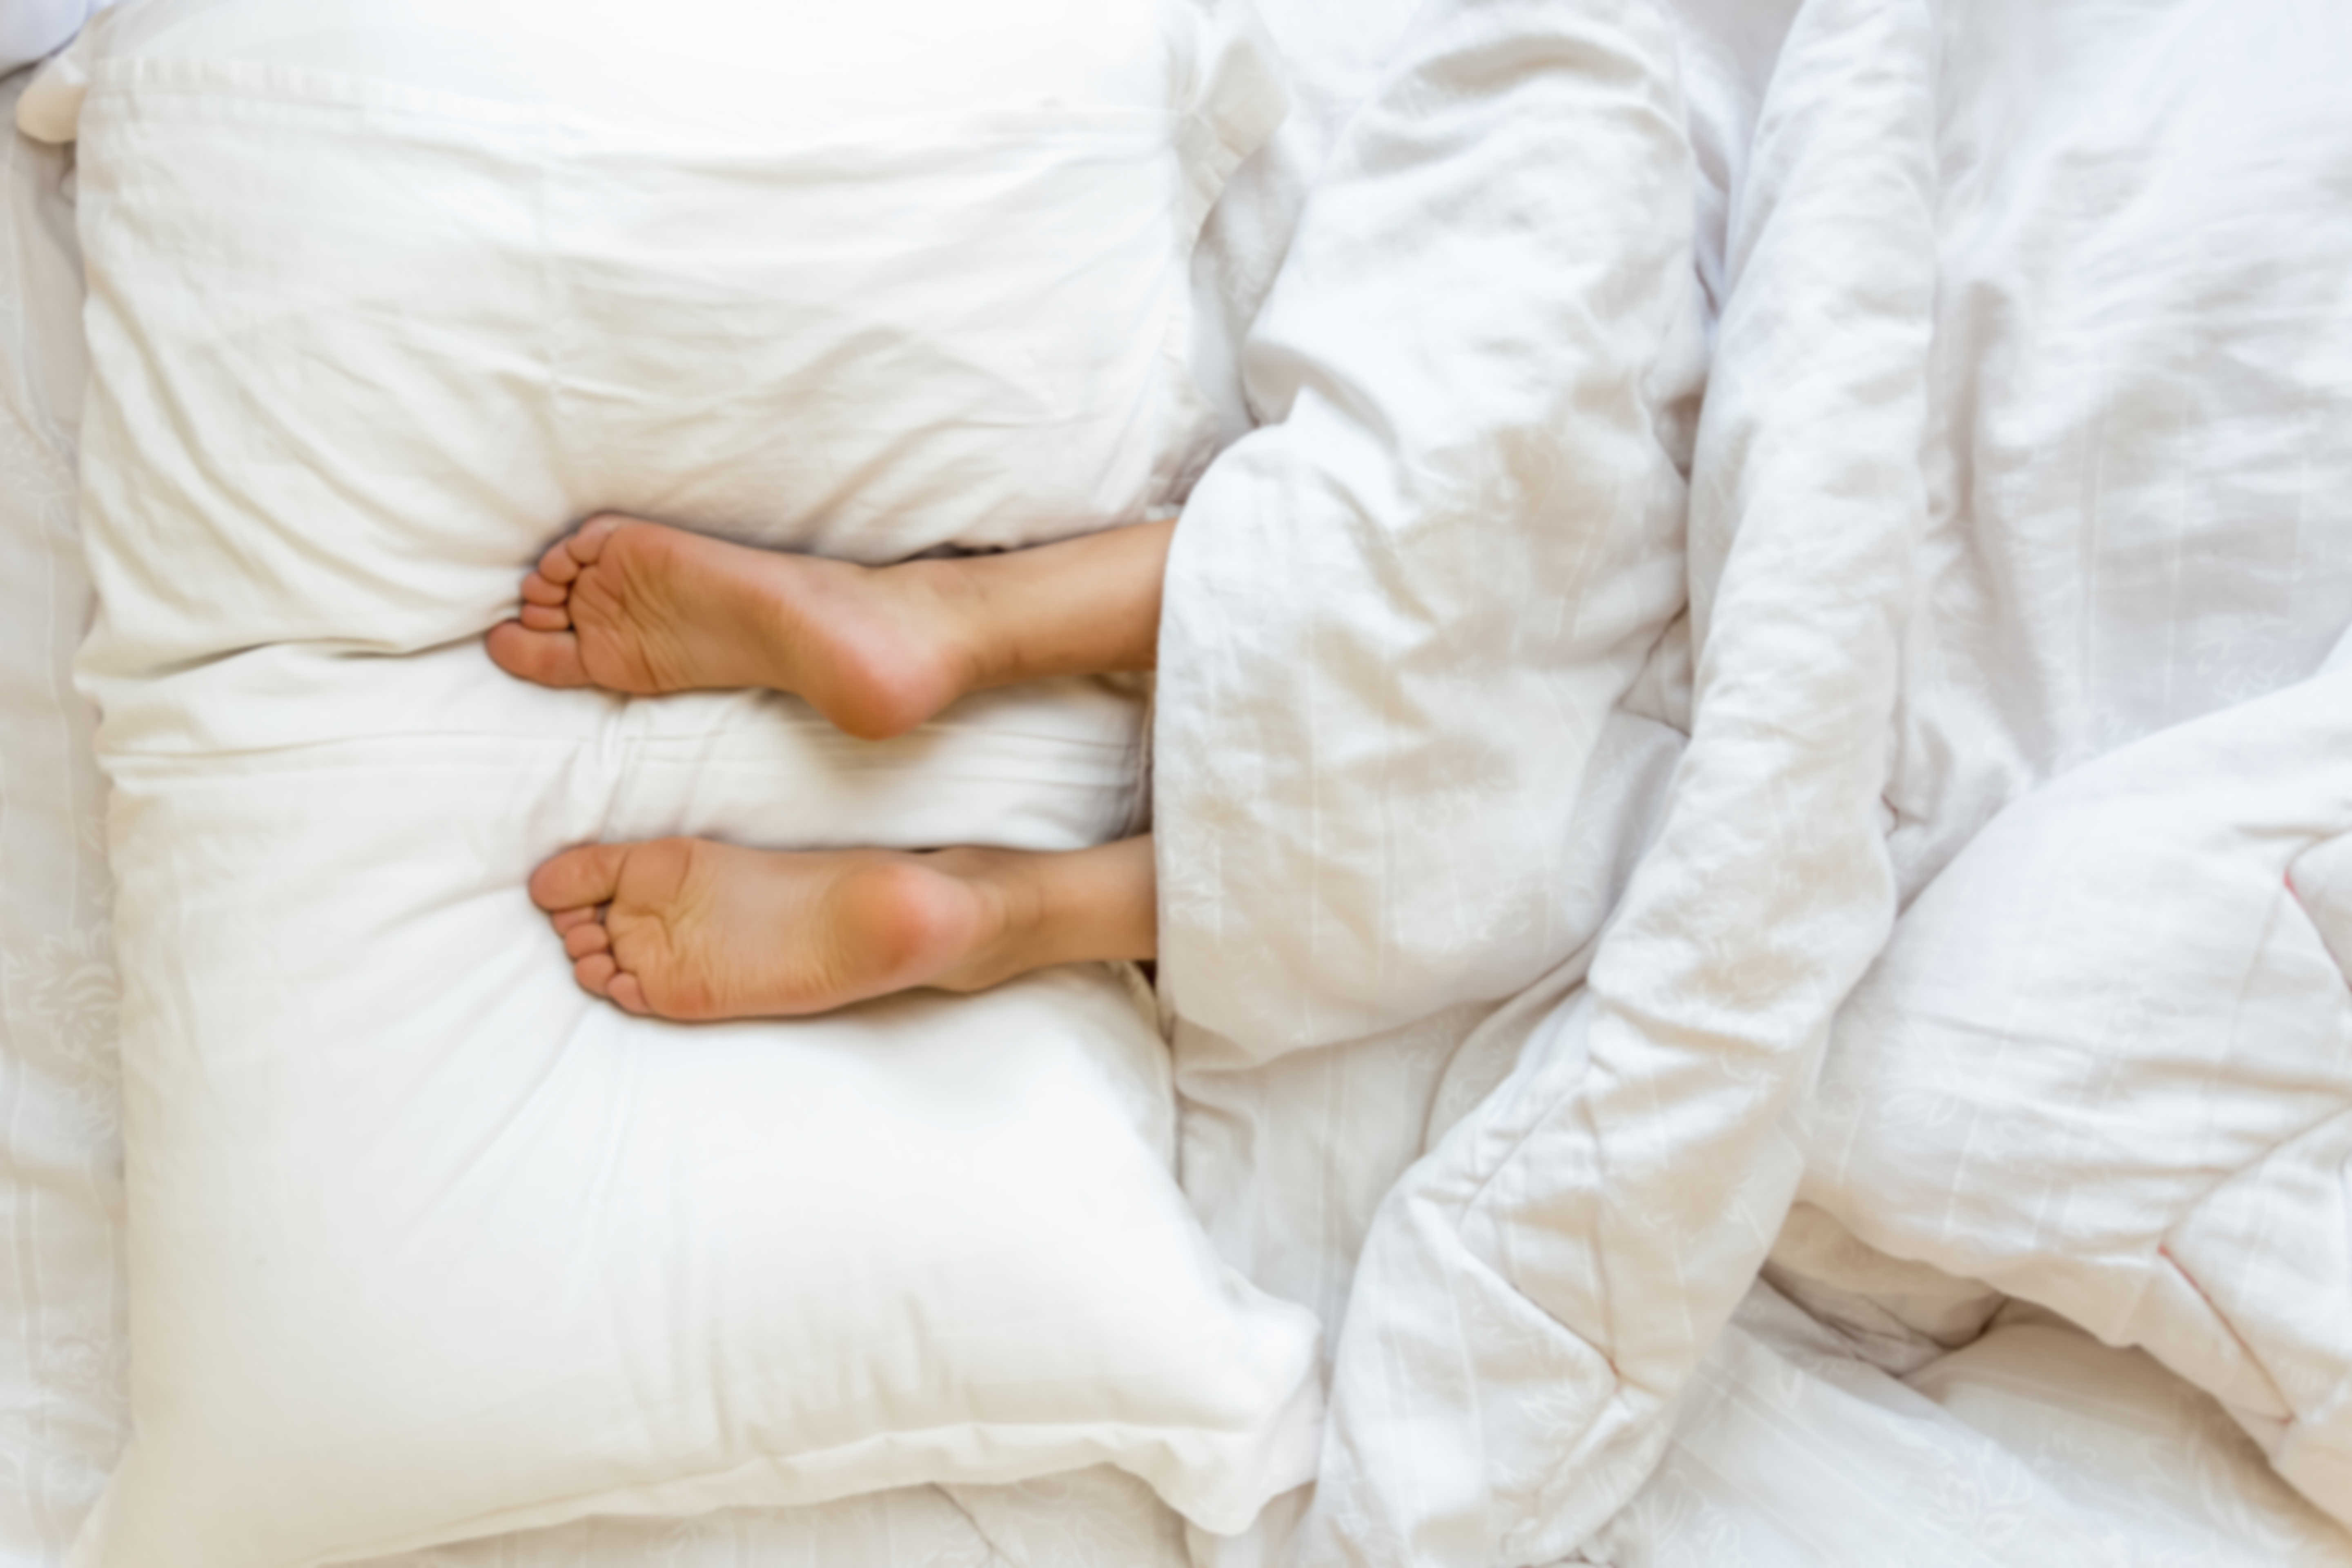 Restless legs and nocturnal cramps